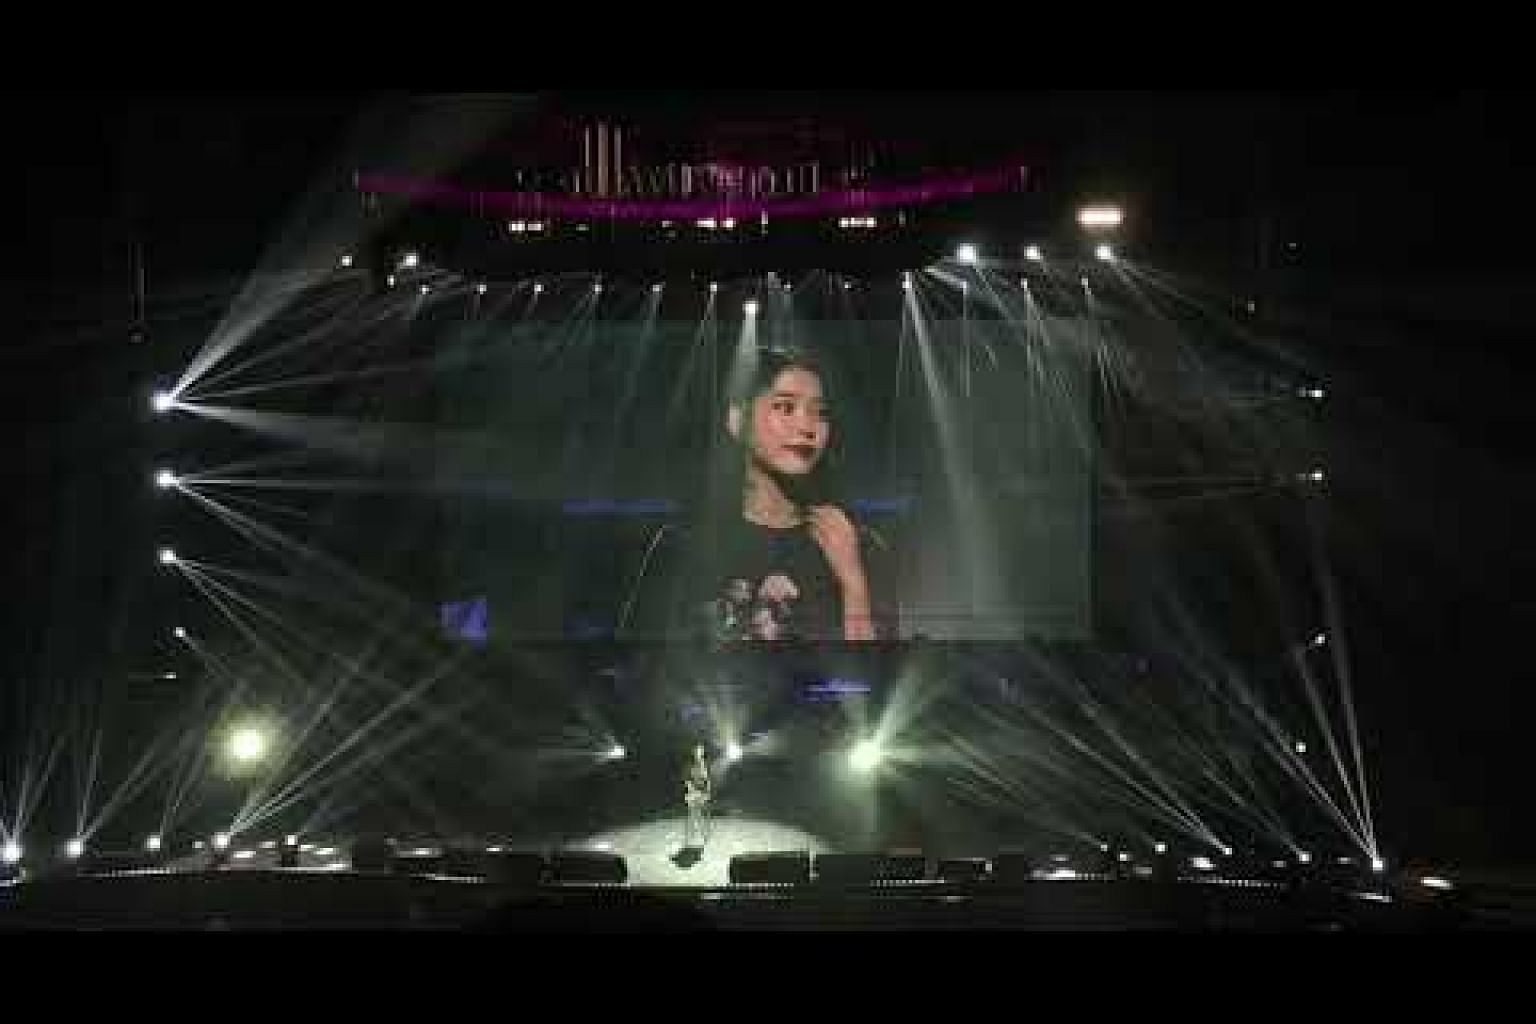 IU at her second encore singing Heart, part of the soundtrack for K-drama, Producers